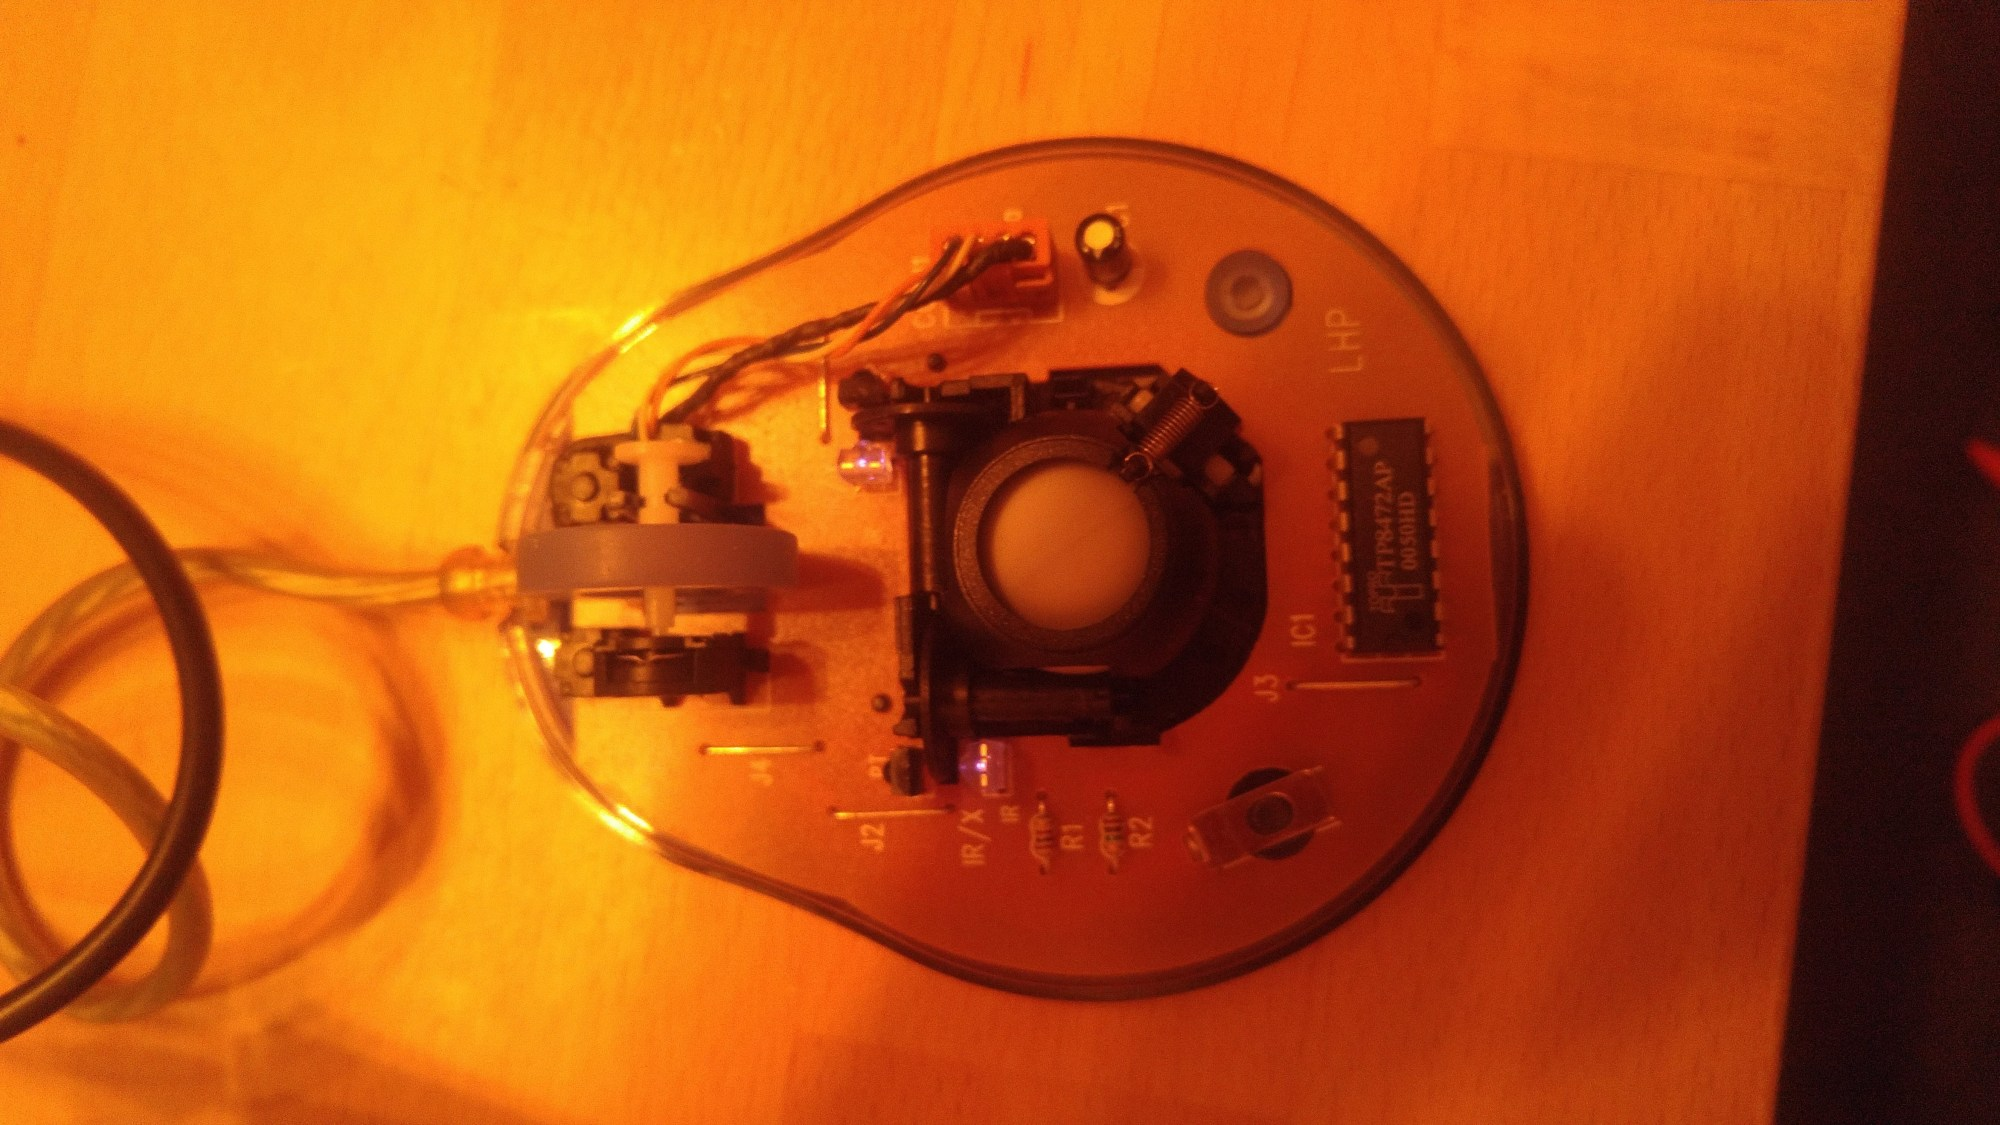 hight resolution of ps 2 mouse for tests details hackaday iops 2 mouse wiring 19